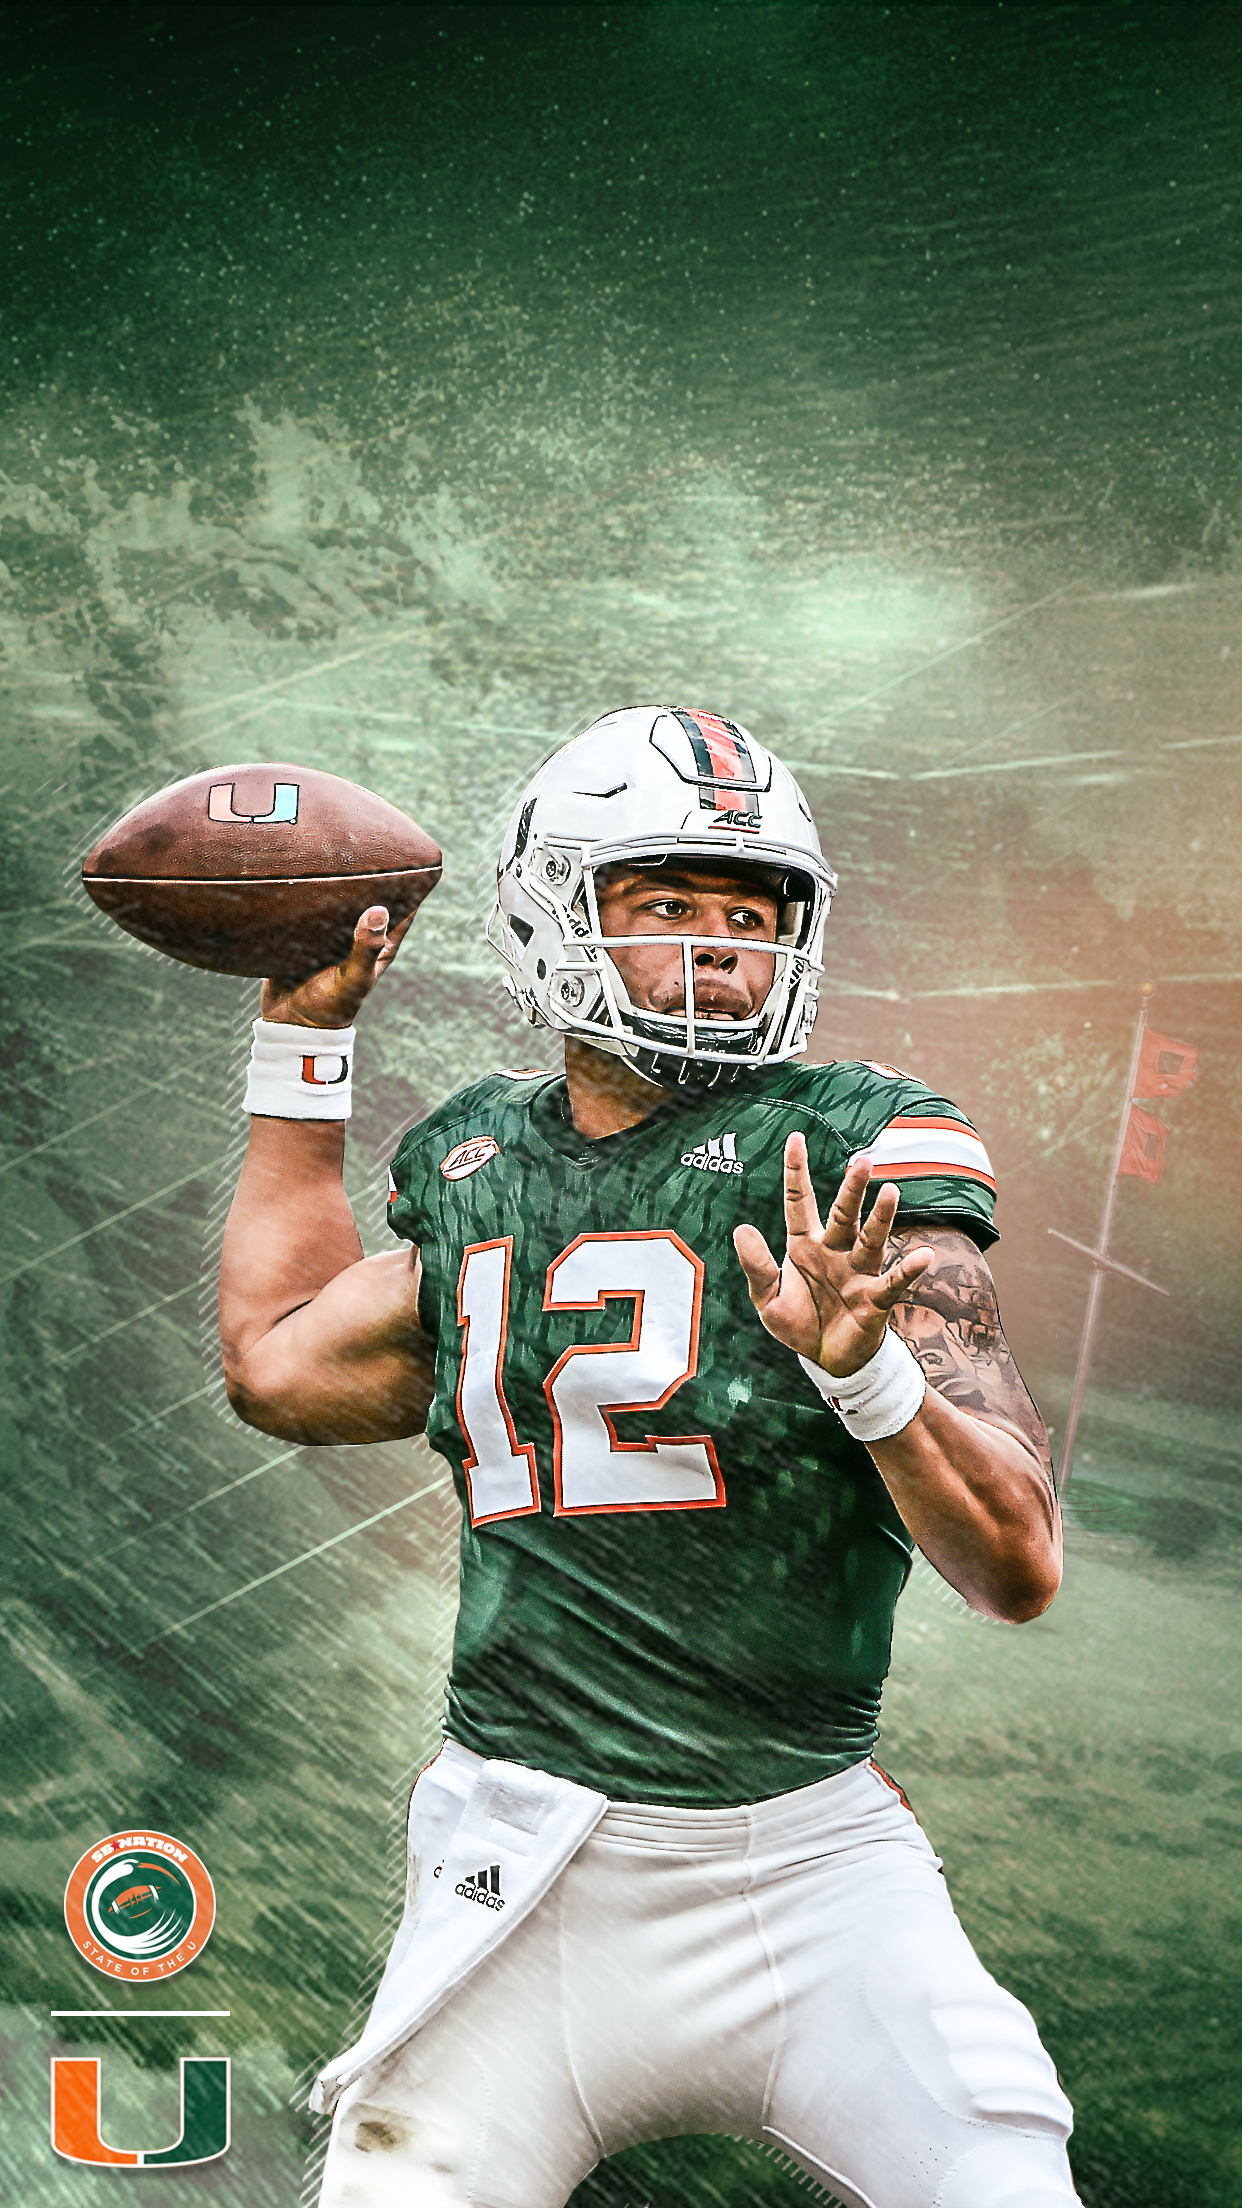 QB1 Getty Images Photo Mike Meredith State Of The U Illustration